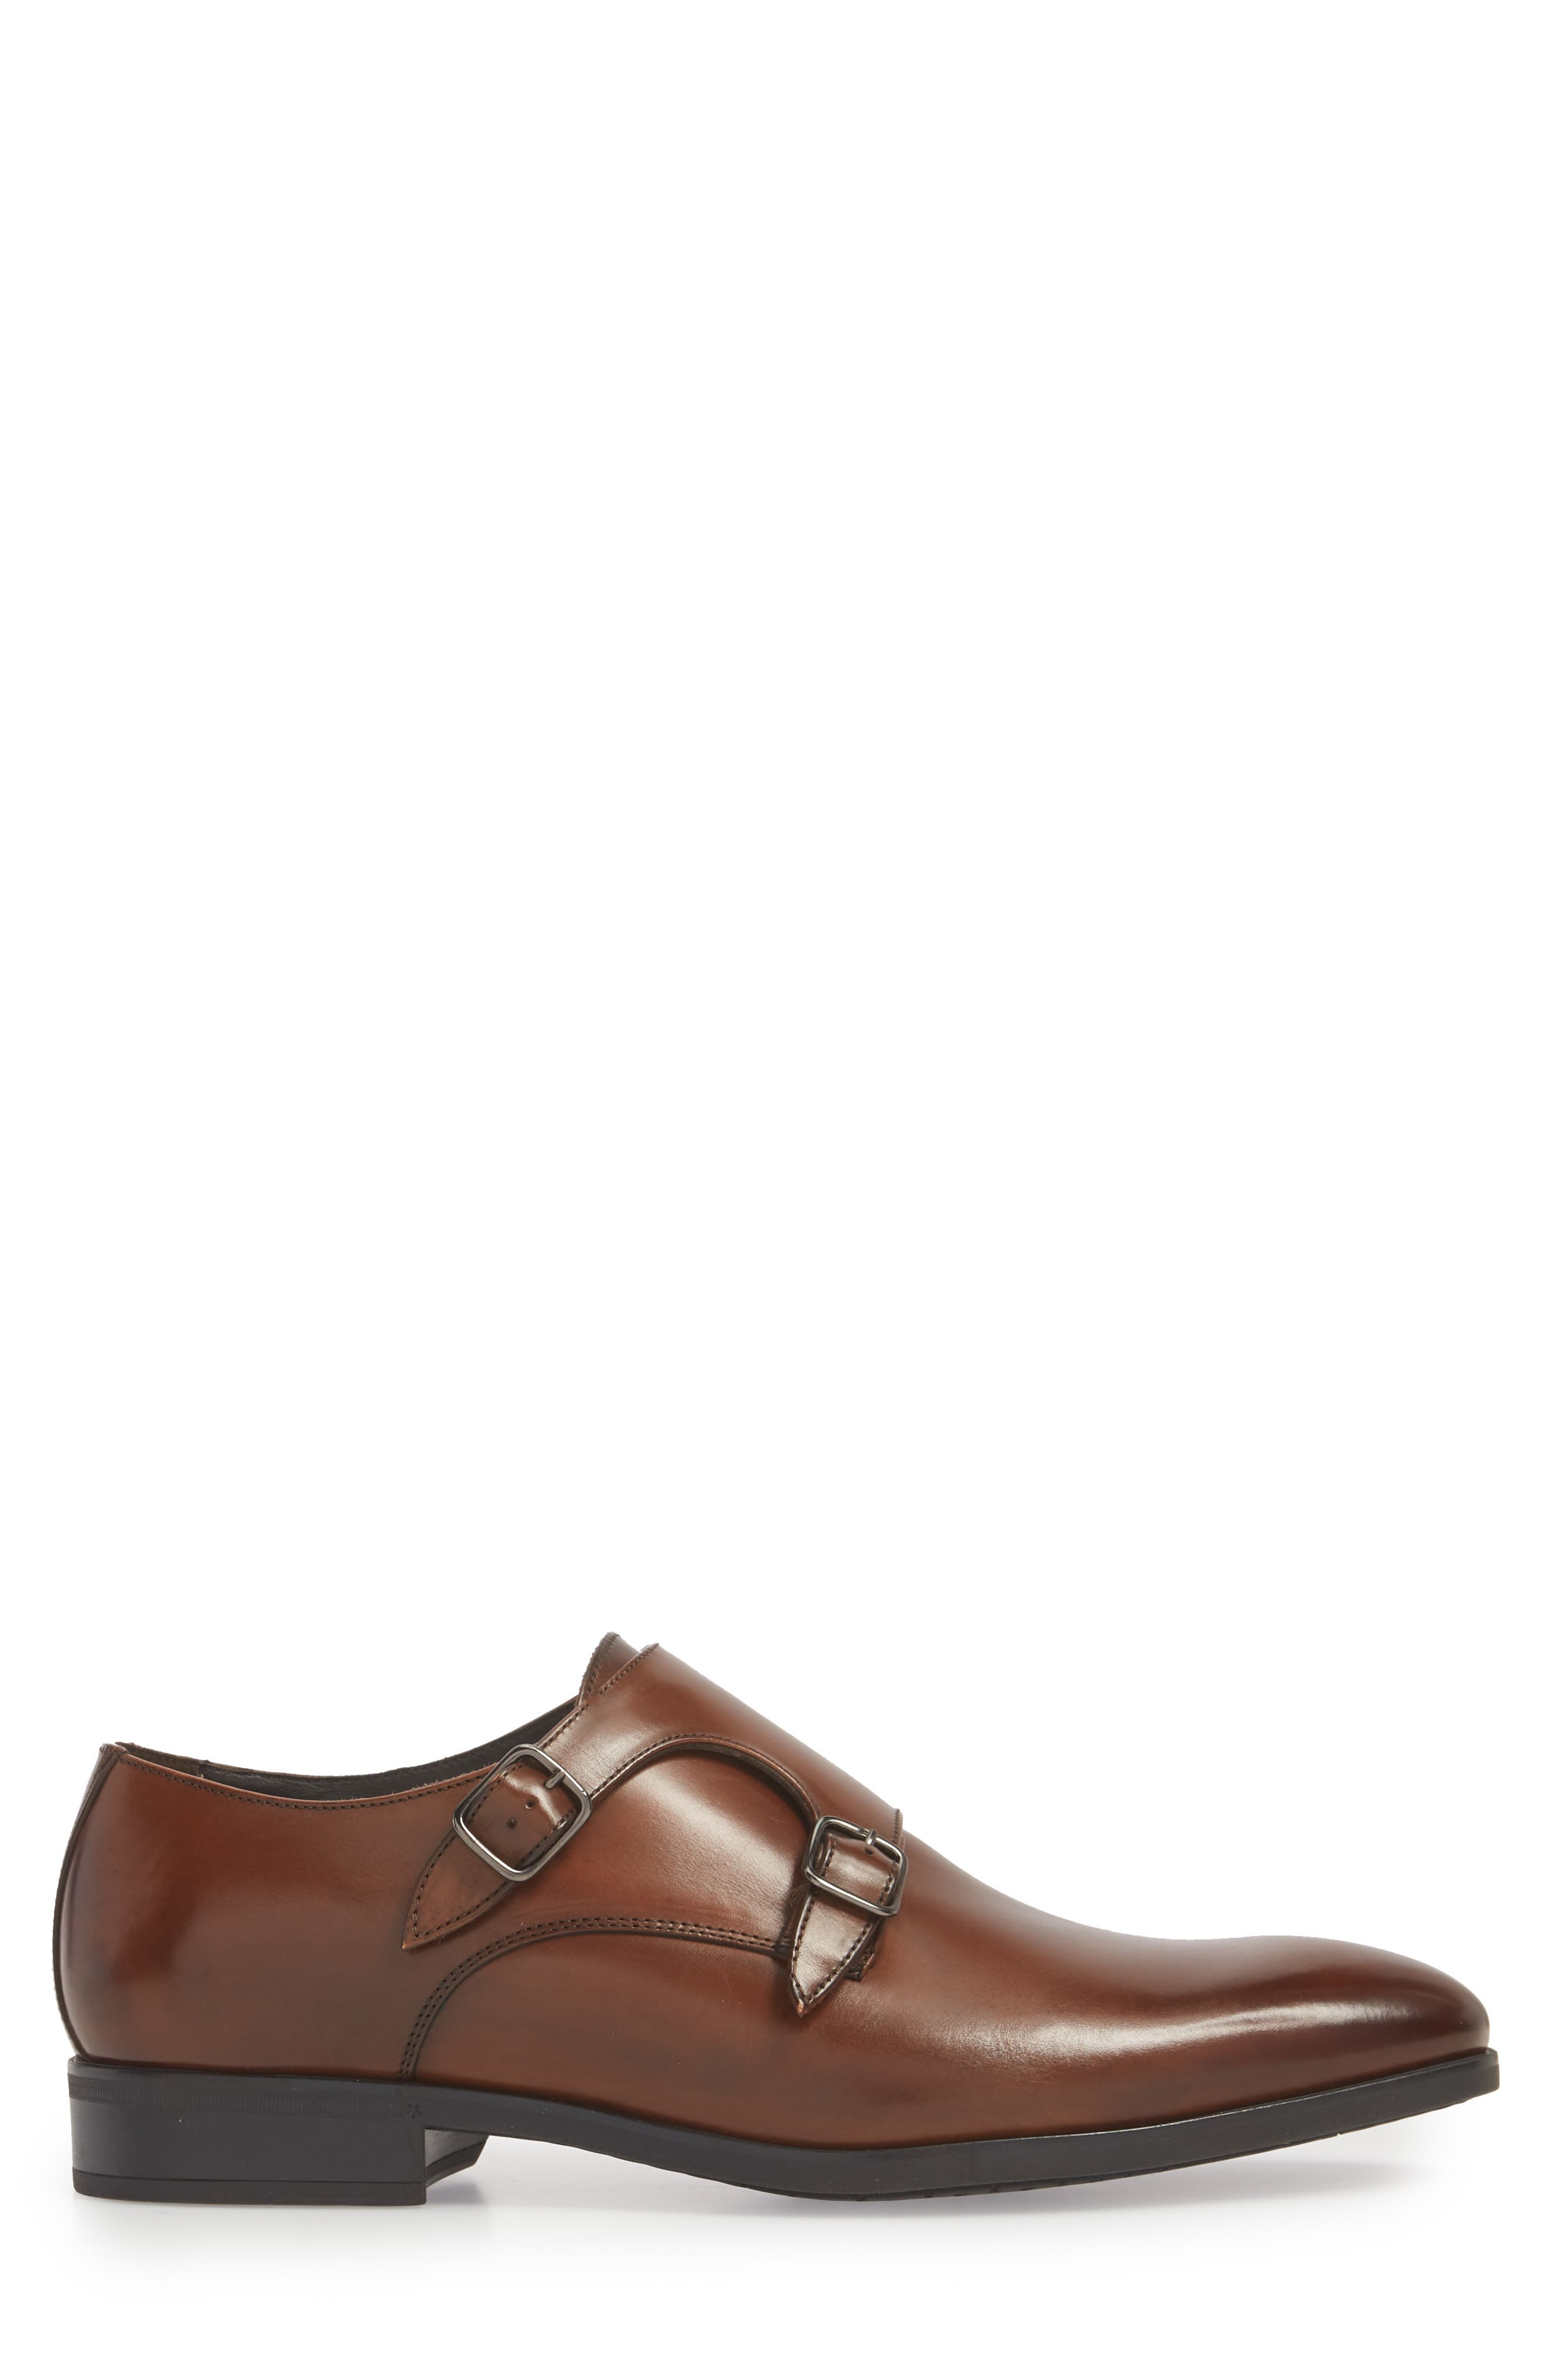 TO BOOT NEW YORK, Benjamin Double Monk Strap Shoe, Alternate thumbnail 3, color, TMORO LEATHER